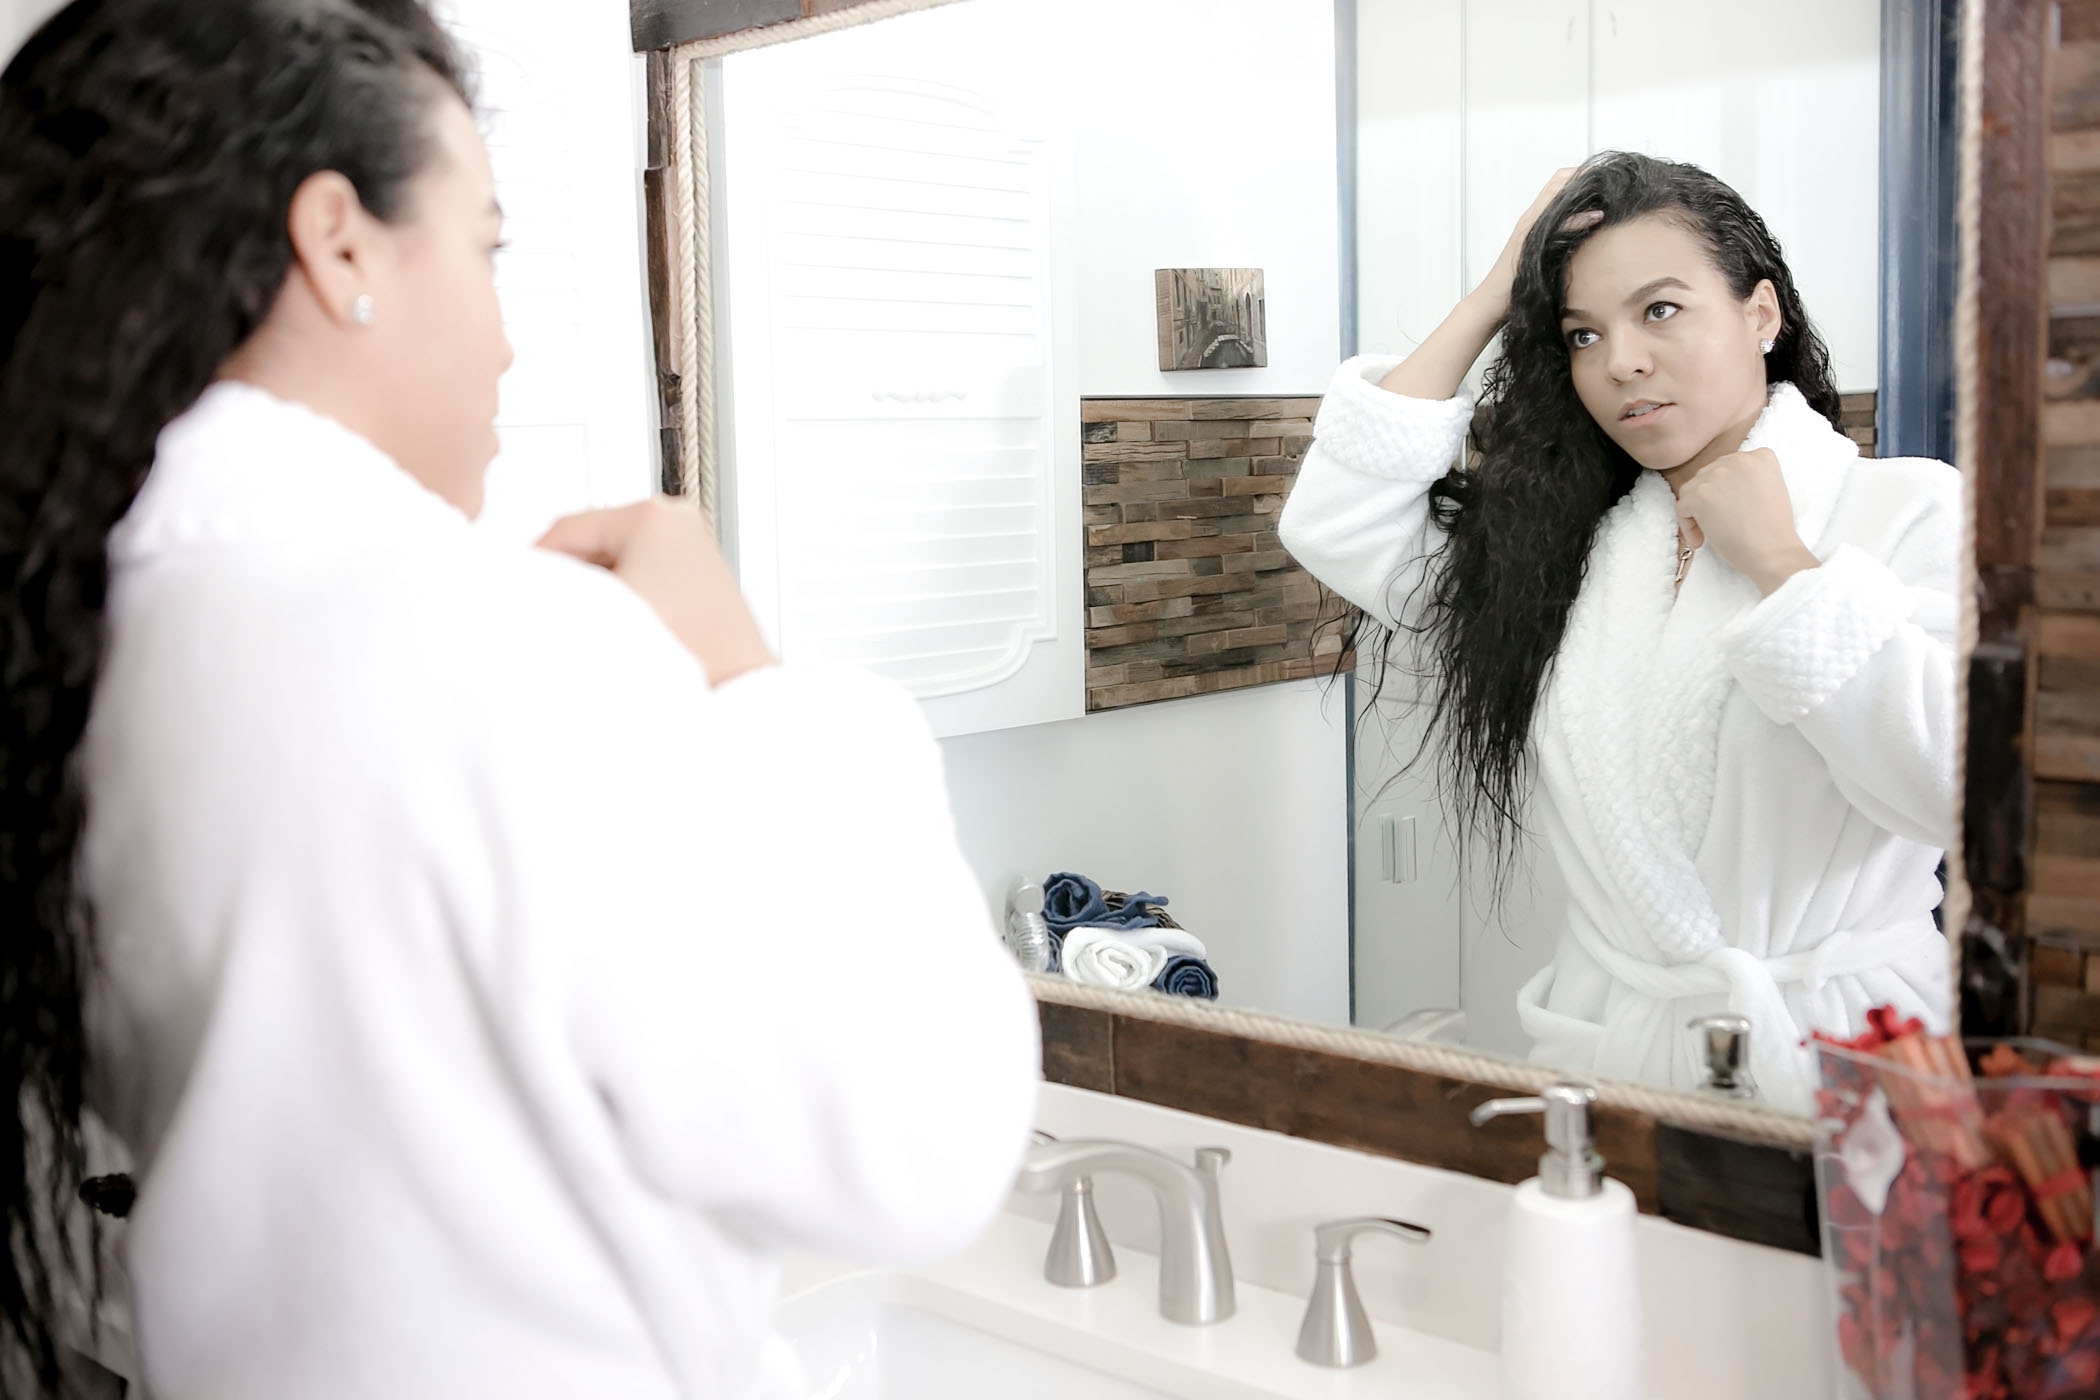 My A.M. shower routine has become one of my favorite rituals to set the tone for my day. Here I explain it step by step and the products I use!